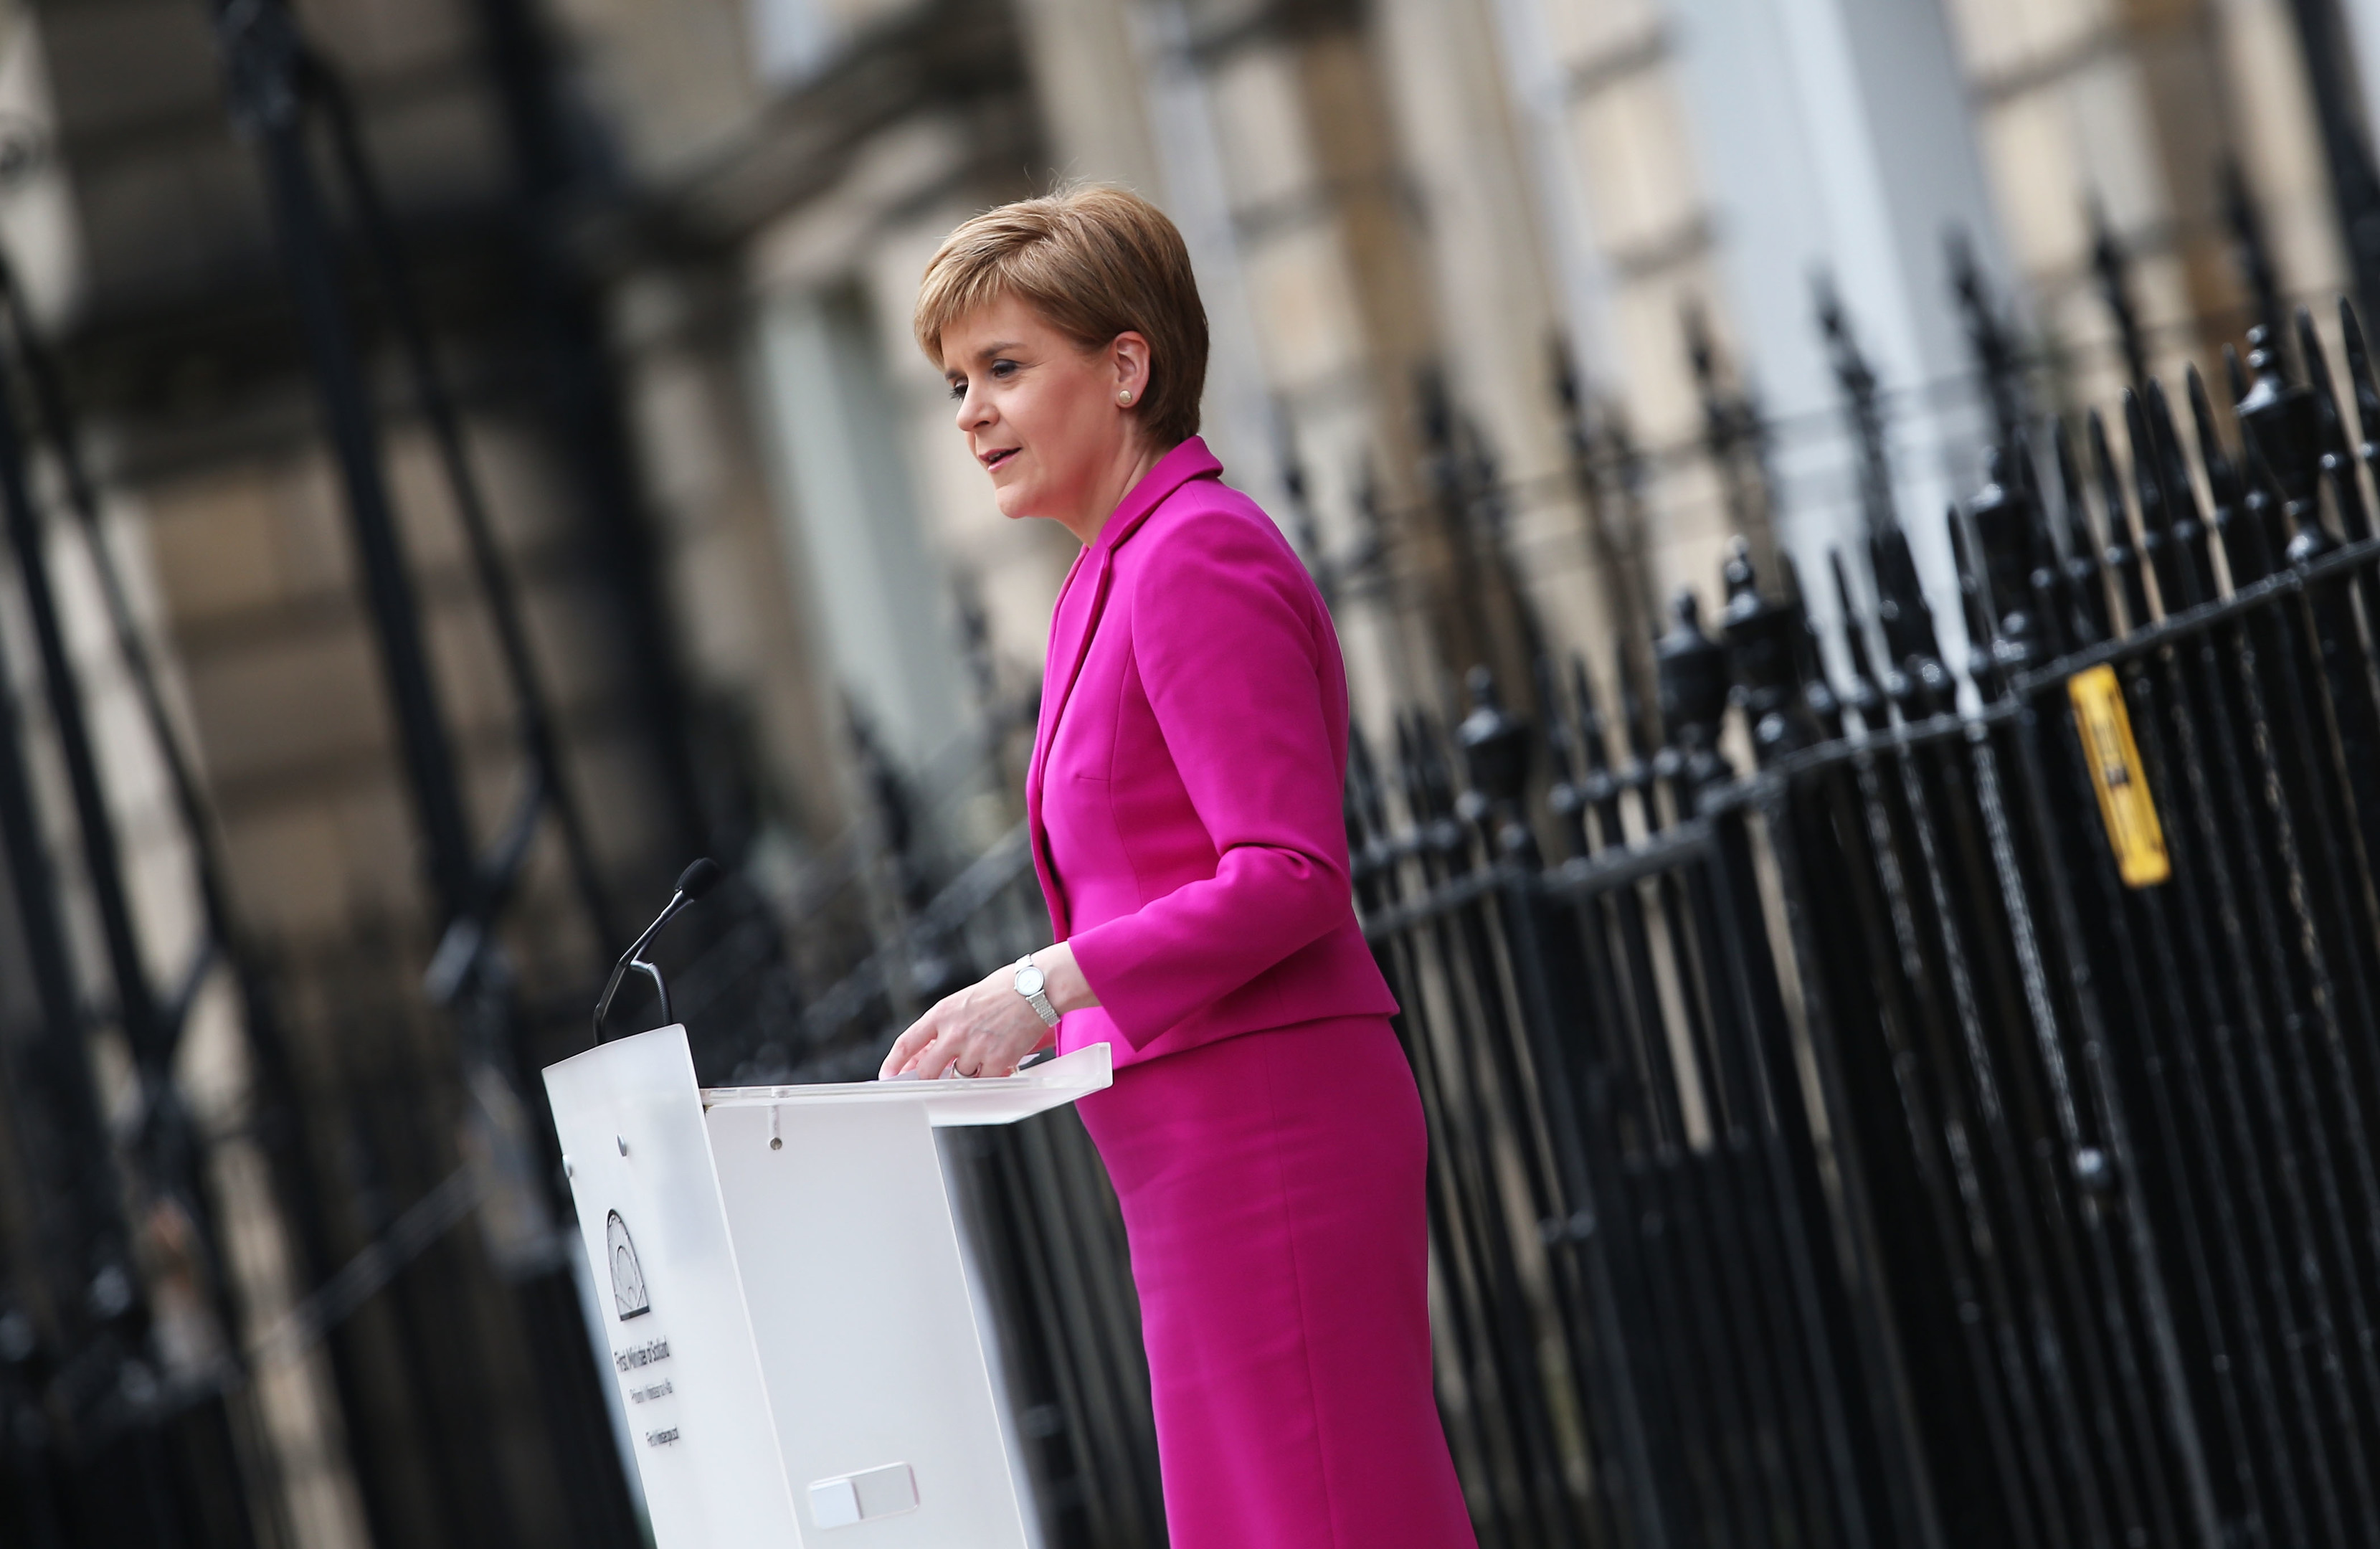 Nicola Sturgeon announces she won't form a coalition but that her government will be inclusive at Holyrood